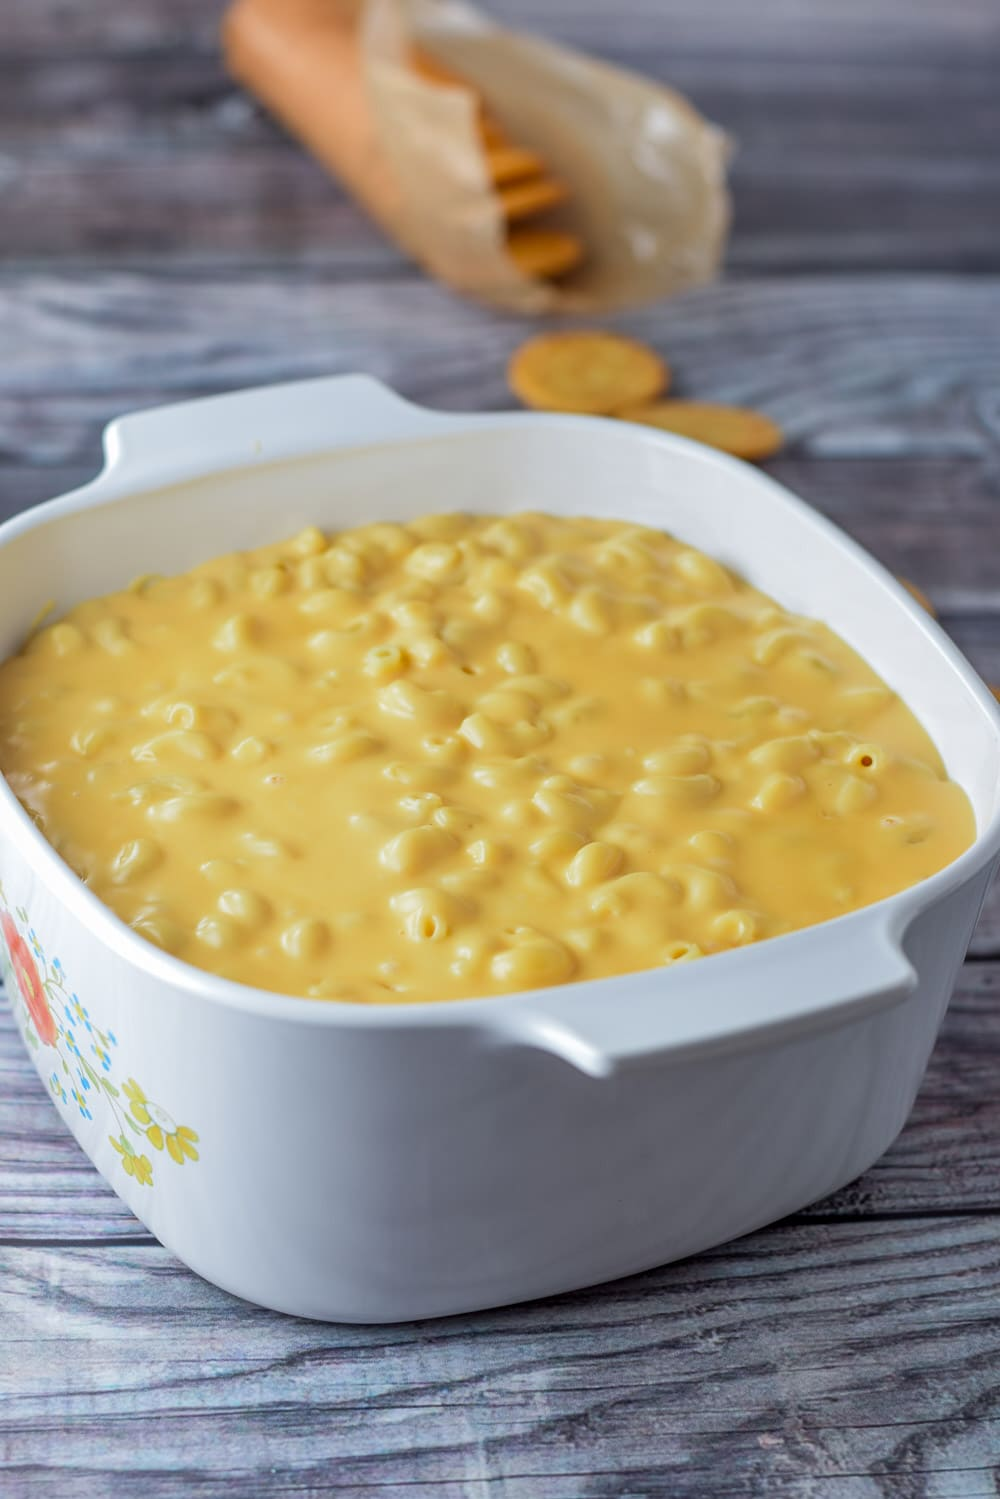 Elbow macaroni and cheese sauce in a casserole dish with some Ritz crackers in the background